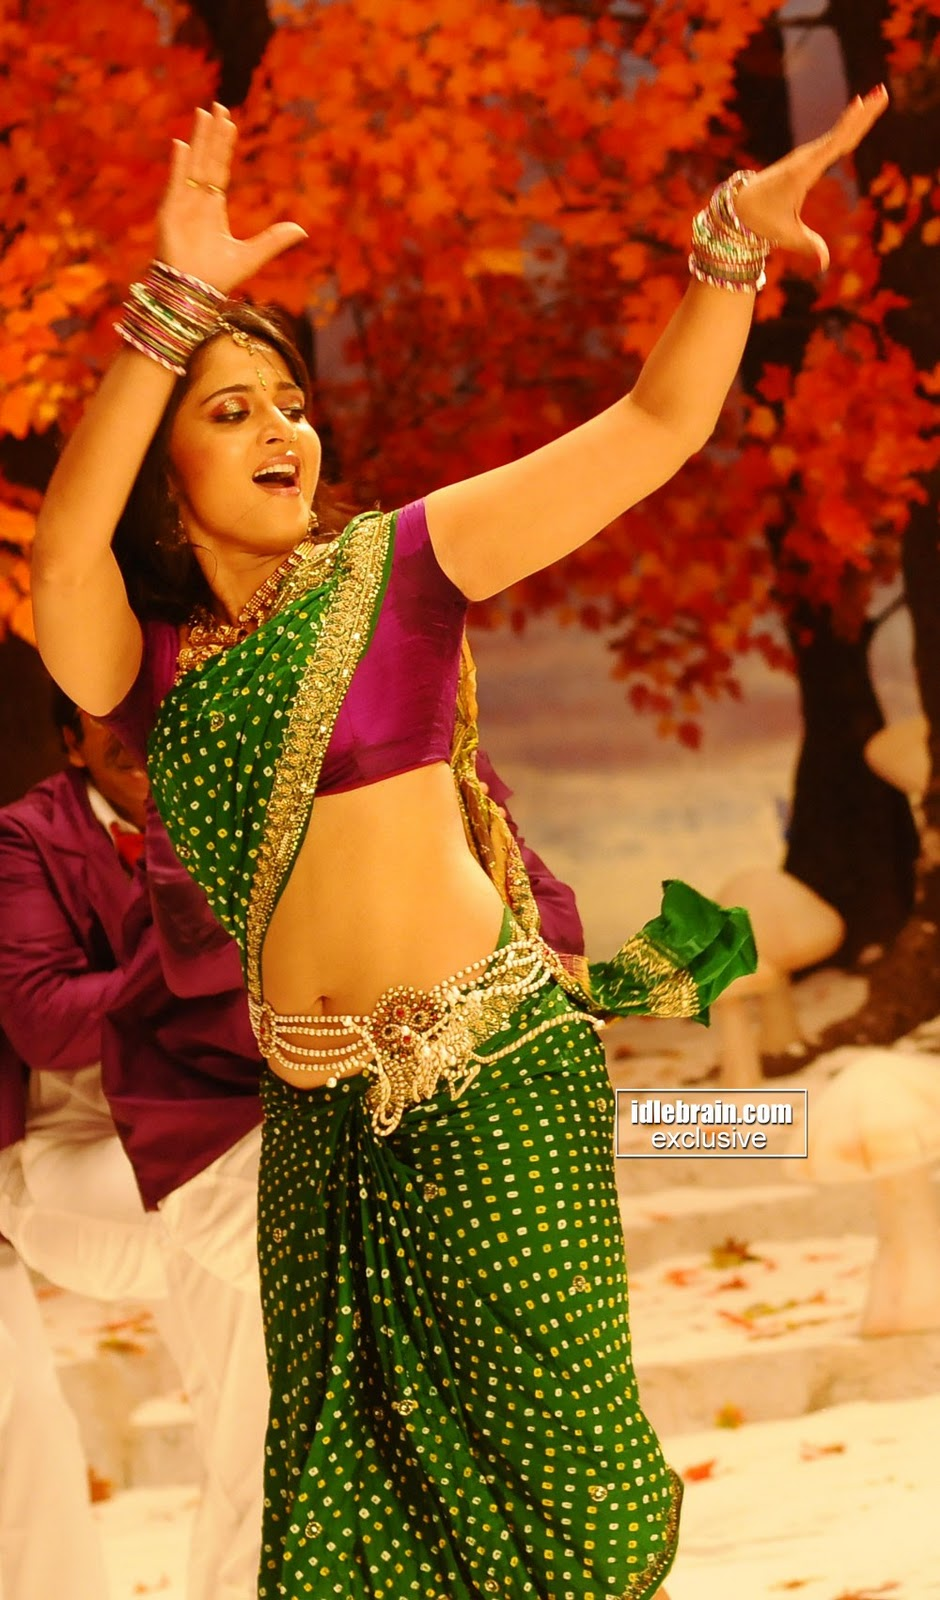 ... hip in green saree | Hot tamil telugu actress saree aunty hot in sari